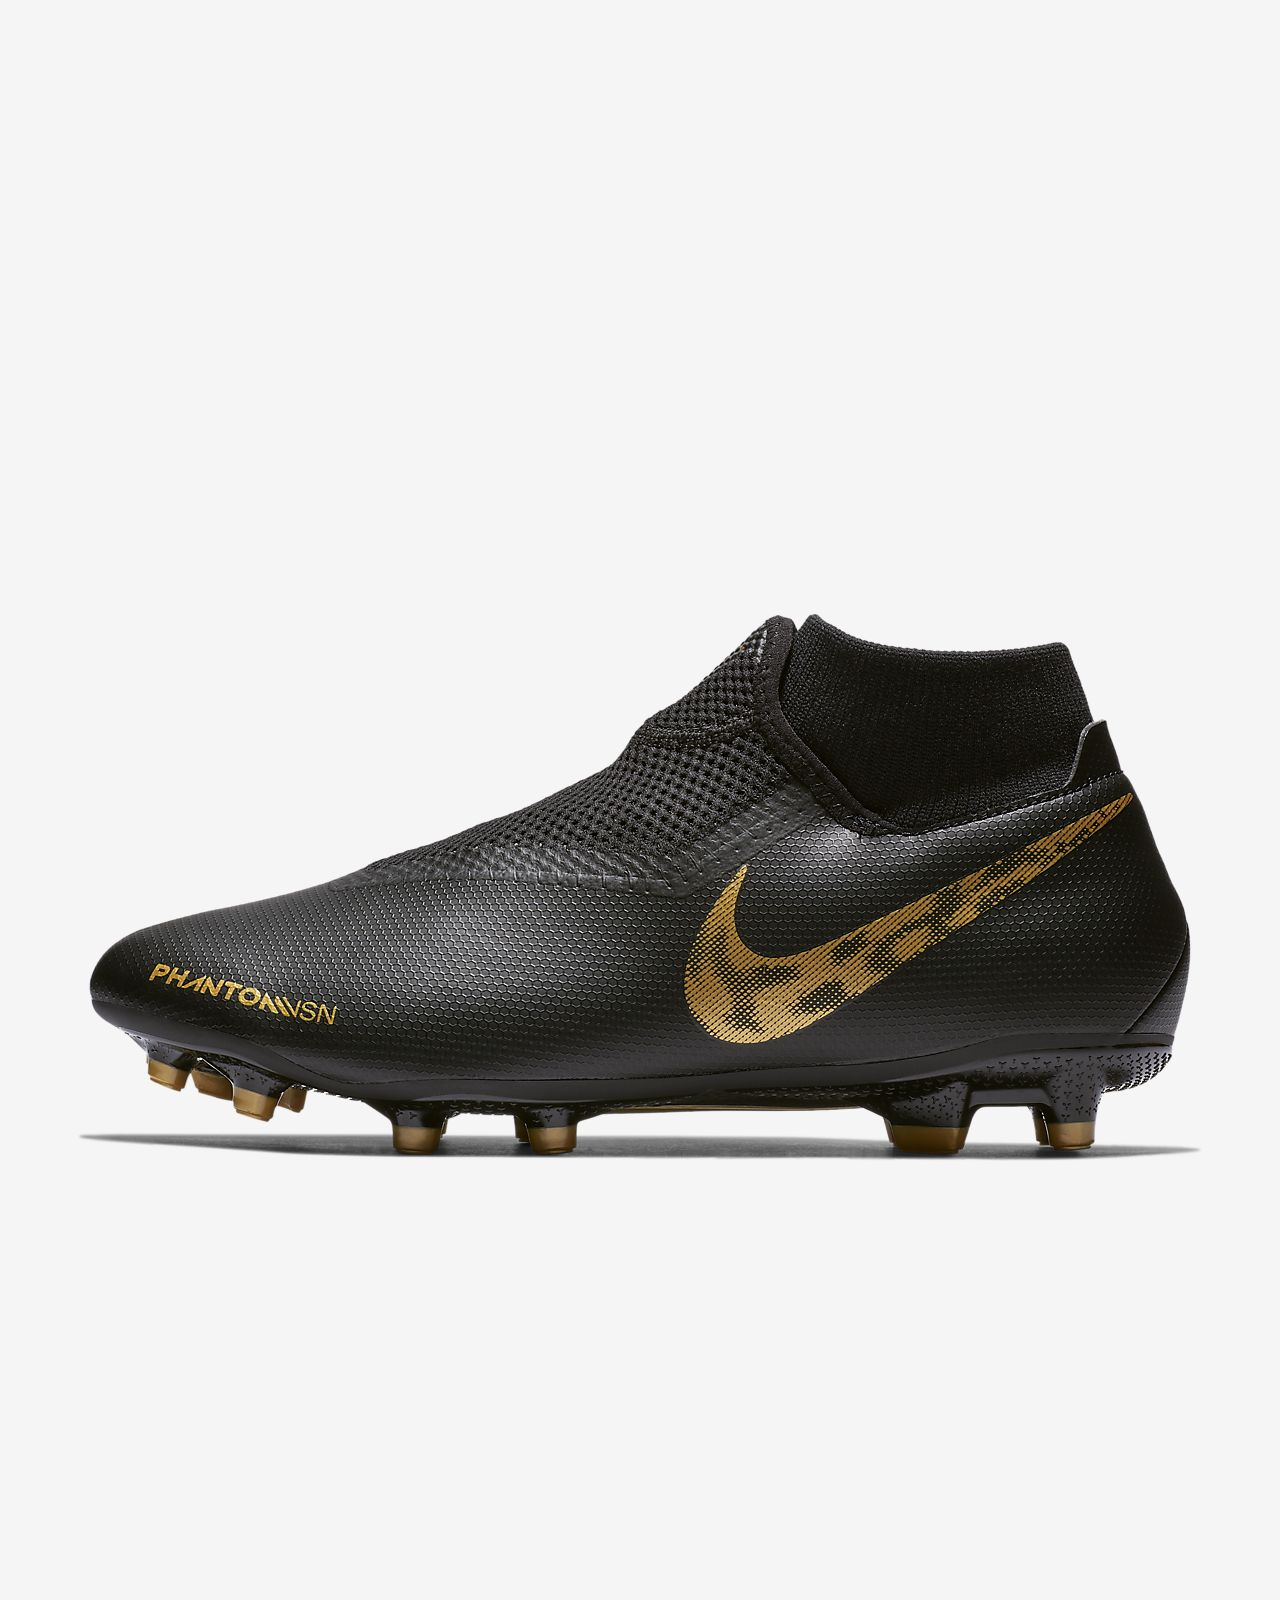 Nike Phantom Vision Academy Dynamic Fit MG Multi-Ground Soccer Cleat